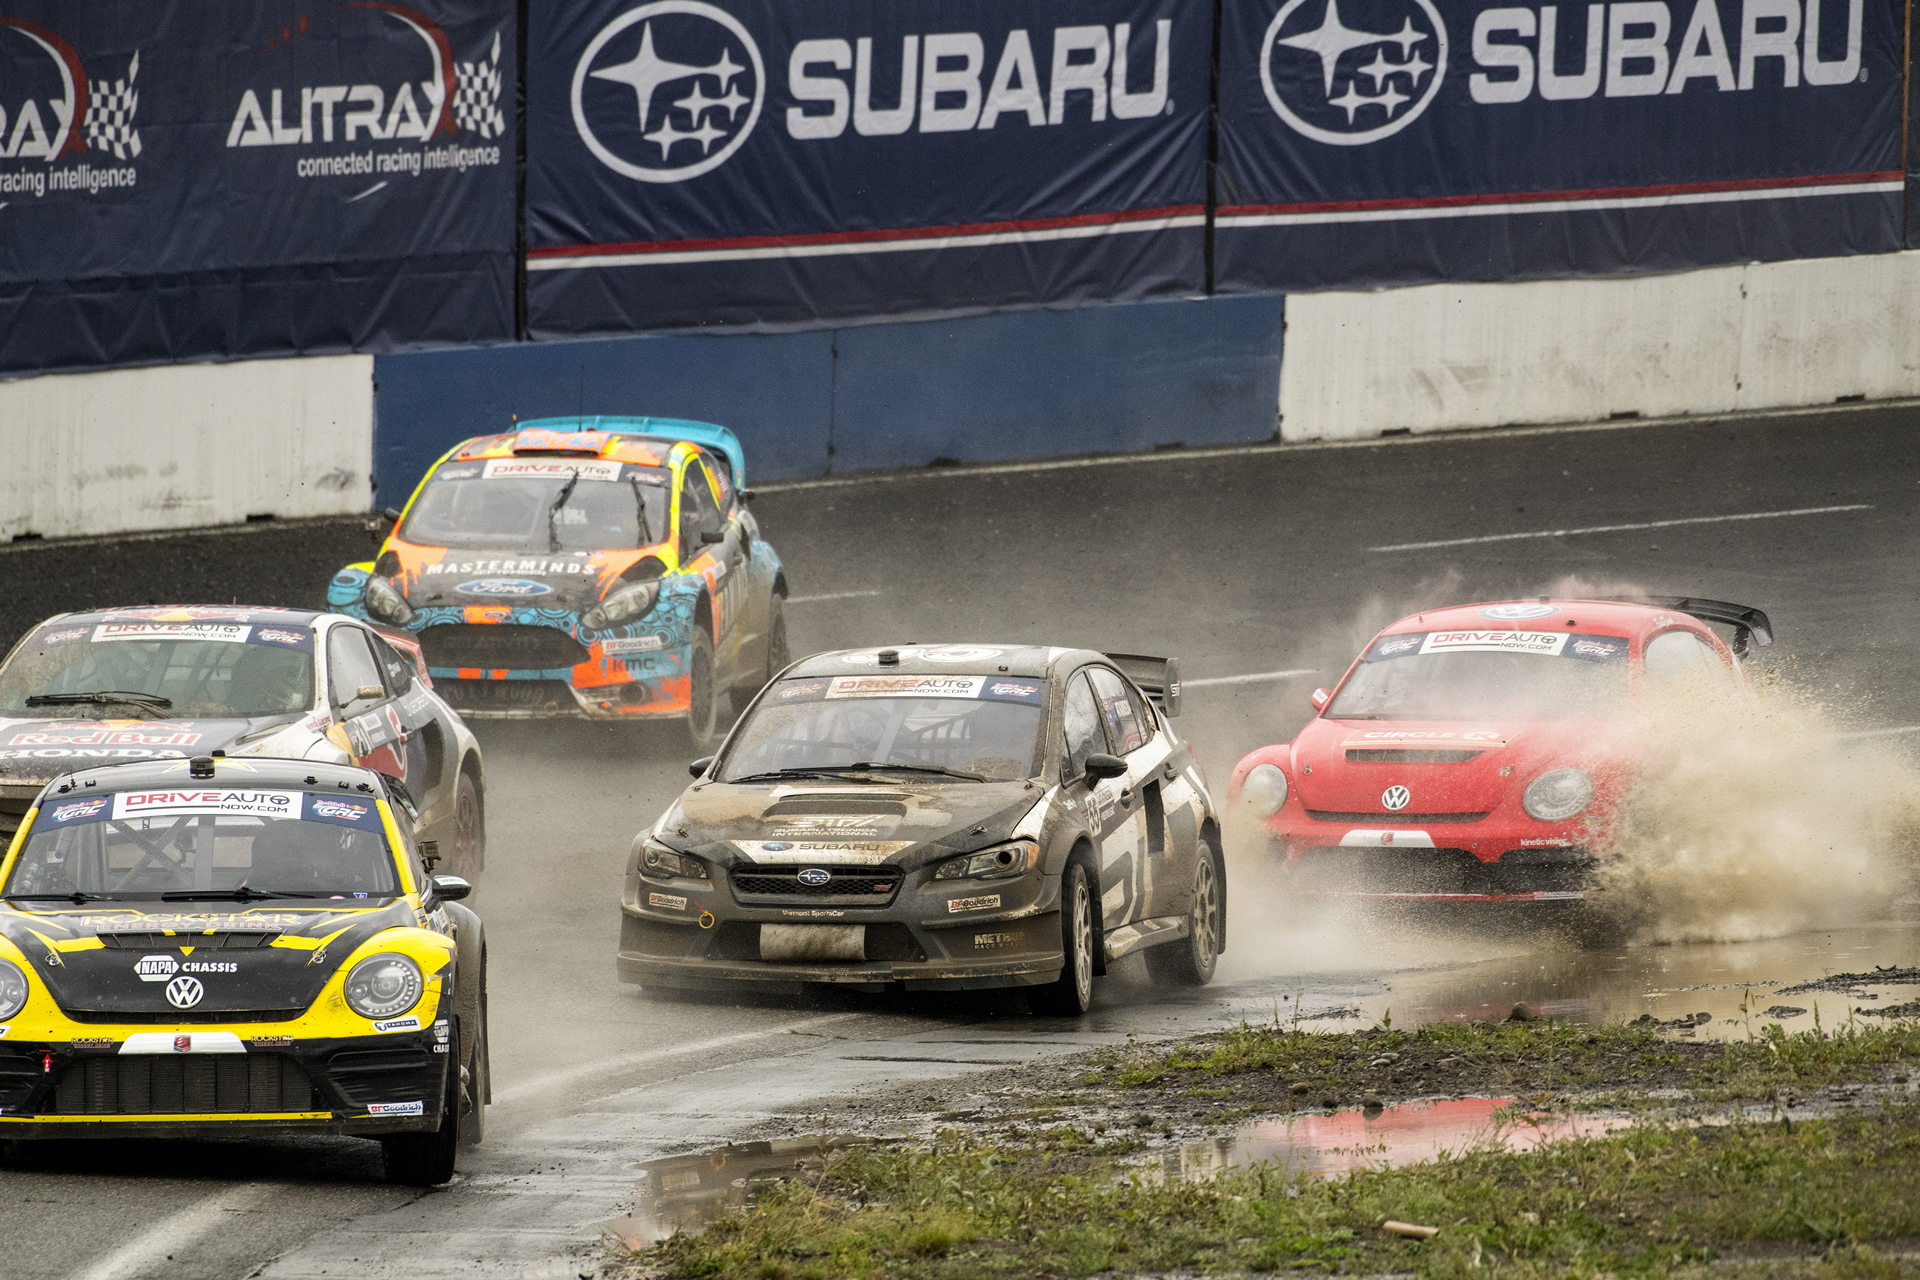 Chris Atkinson during the semi final at GRC Seattle © Fuji Heavy Industries, Ltd.